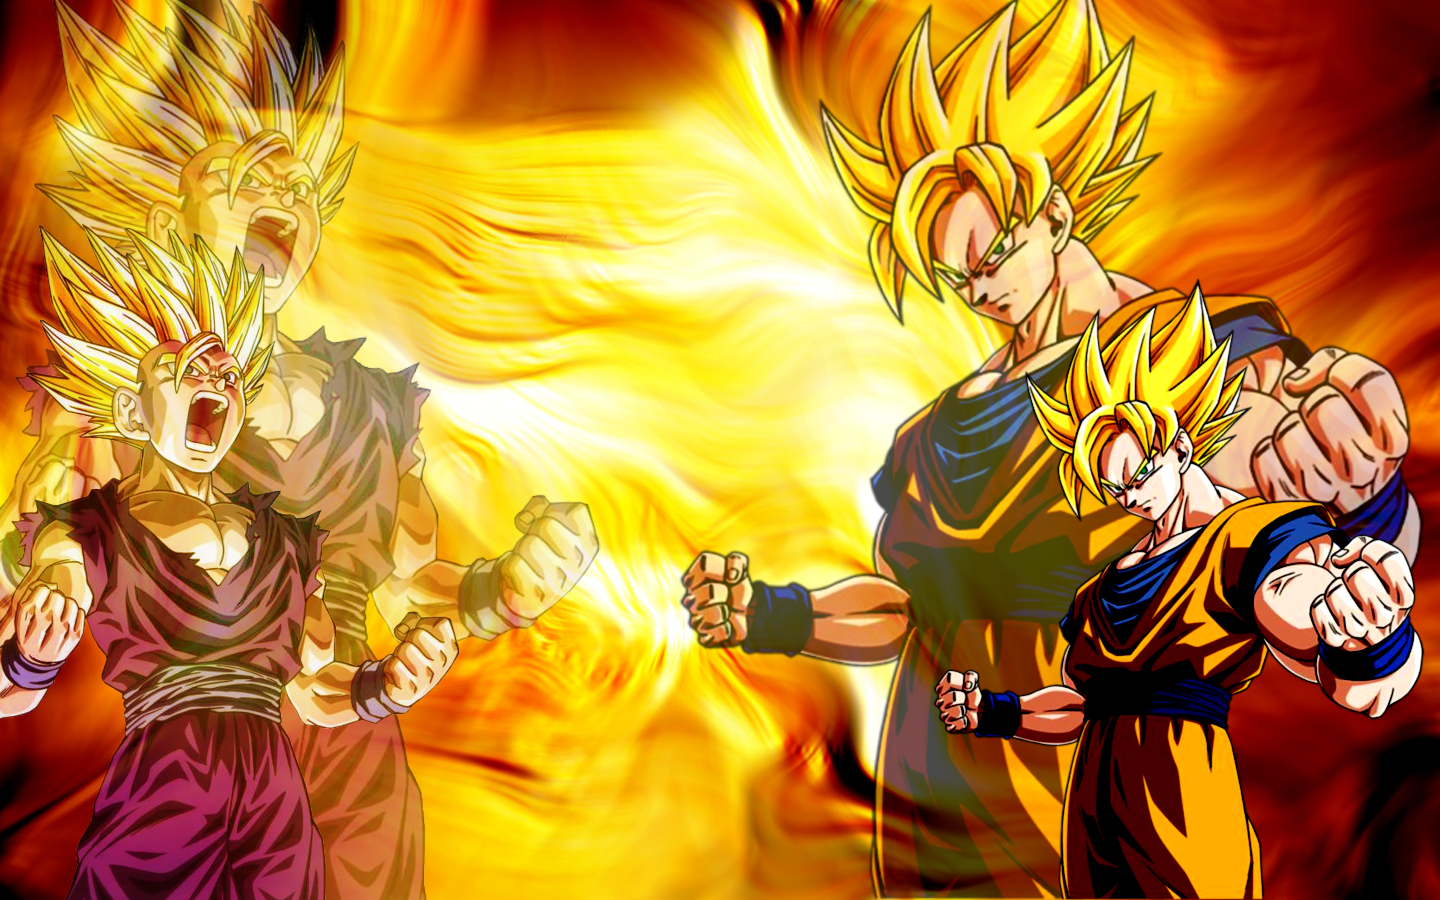 dragon ball z wallpapers hd   Taringa 1440x900